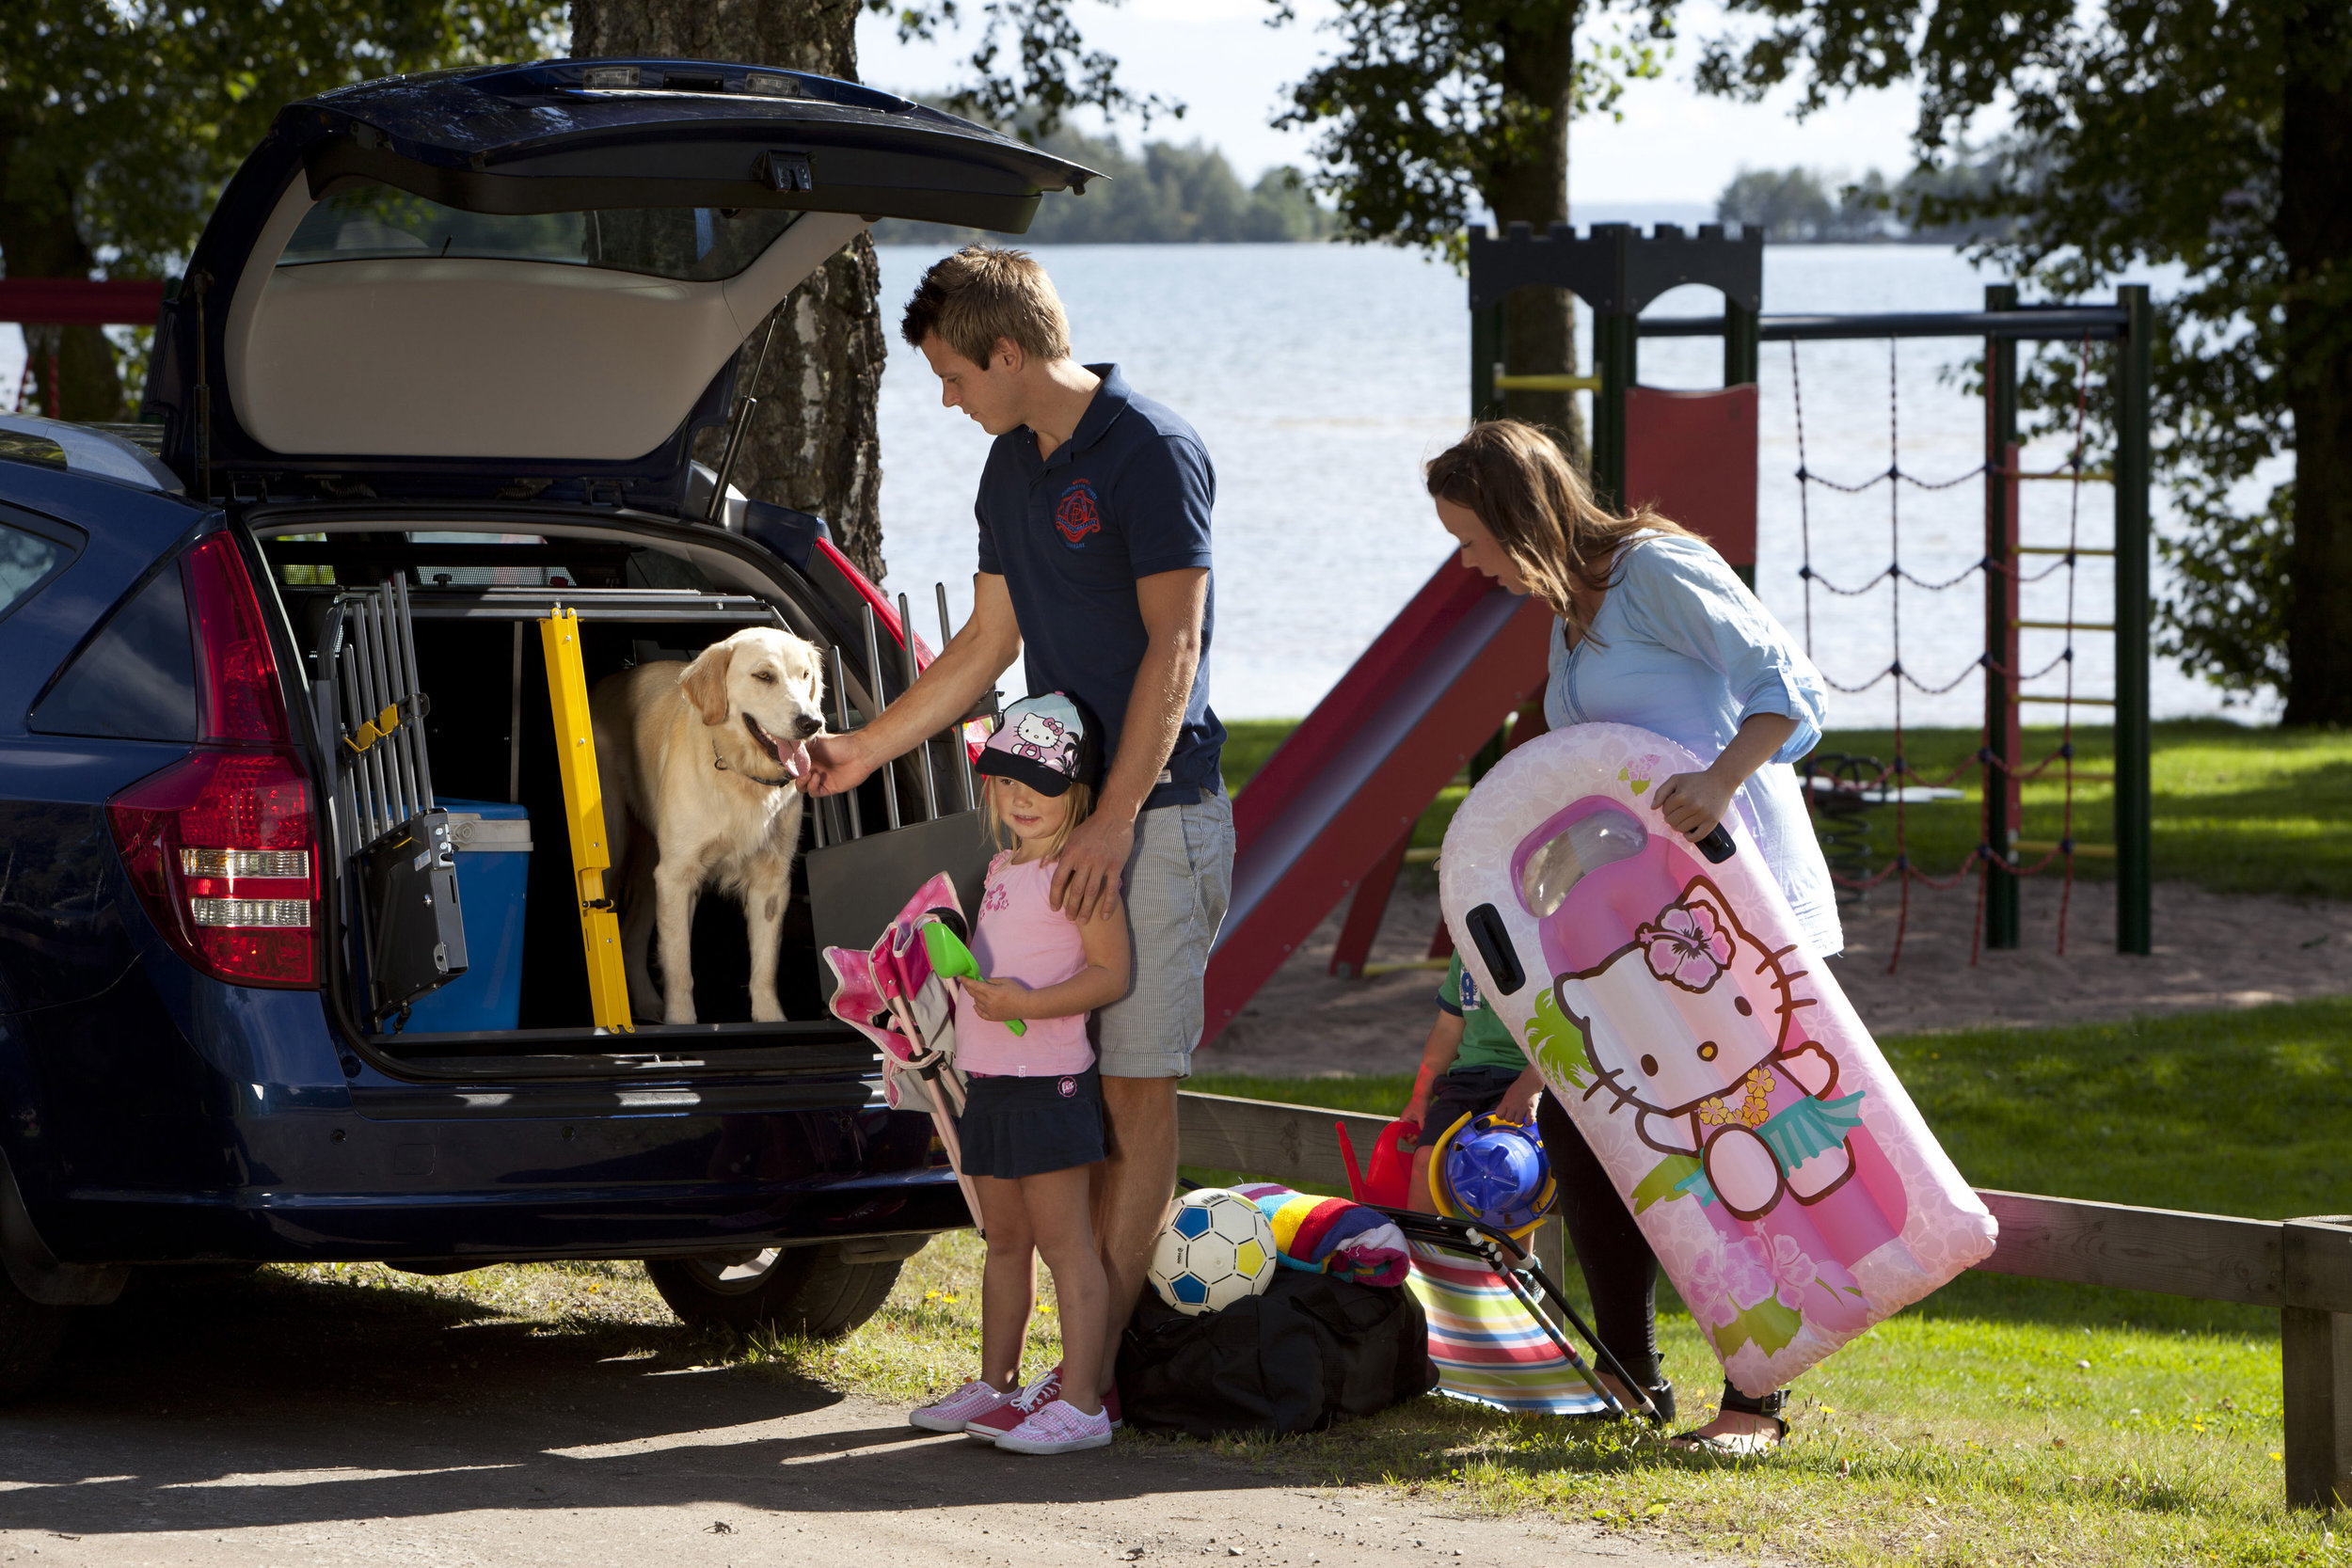 Family_summer_playingground_dog_luggage_00364_20X30cm_print.jpg